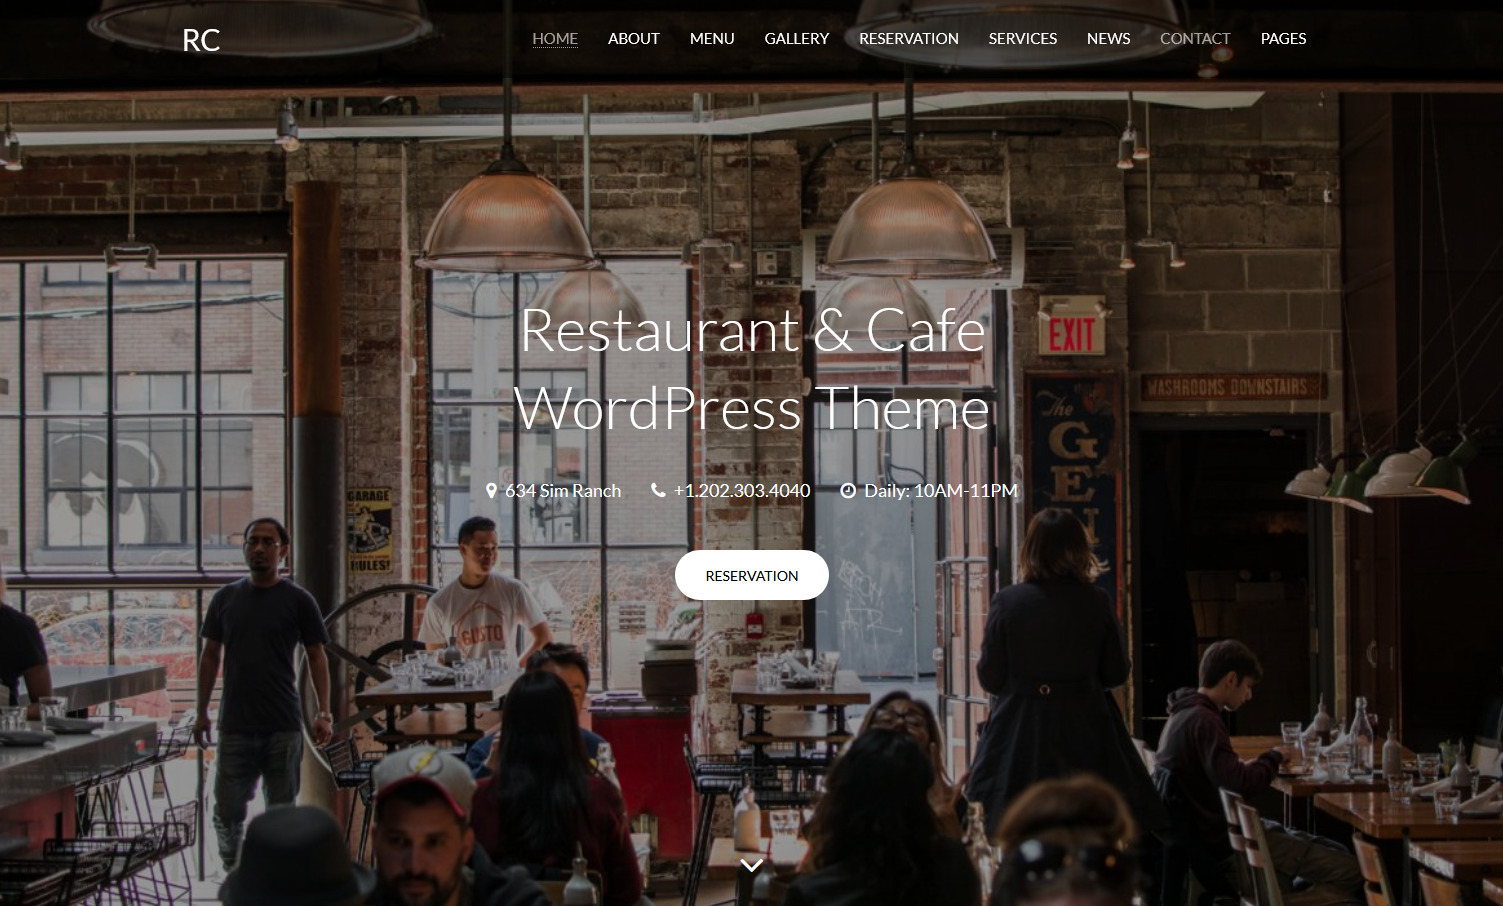 RC Restaaurant Cafe and Bakery WordPress Theme